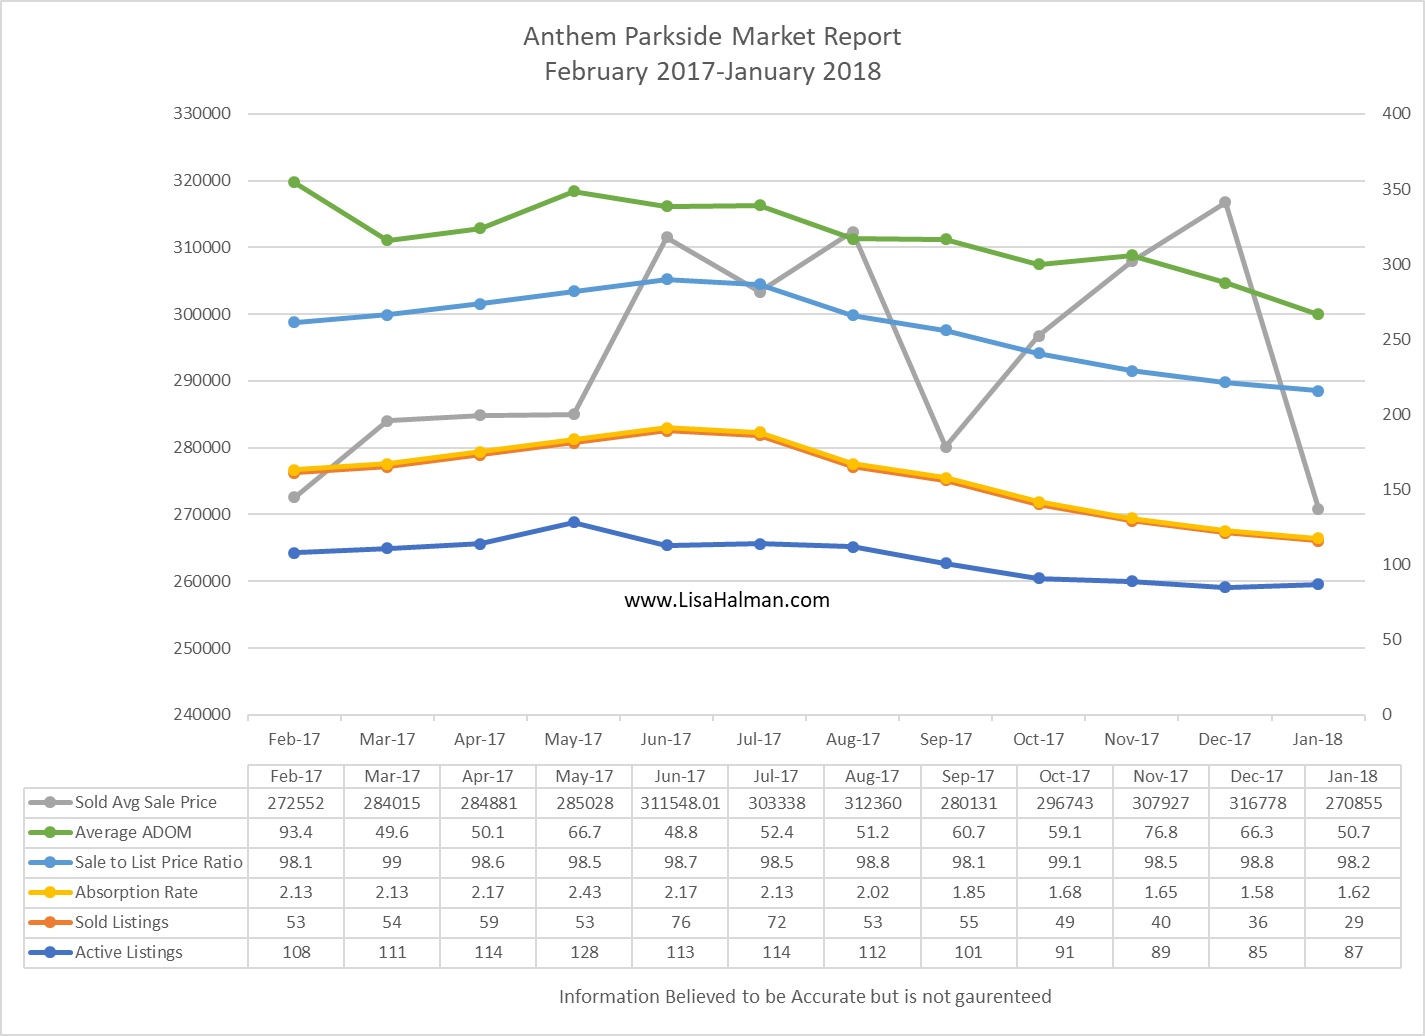 Anthem Parkside Market Update January 2018